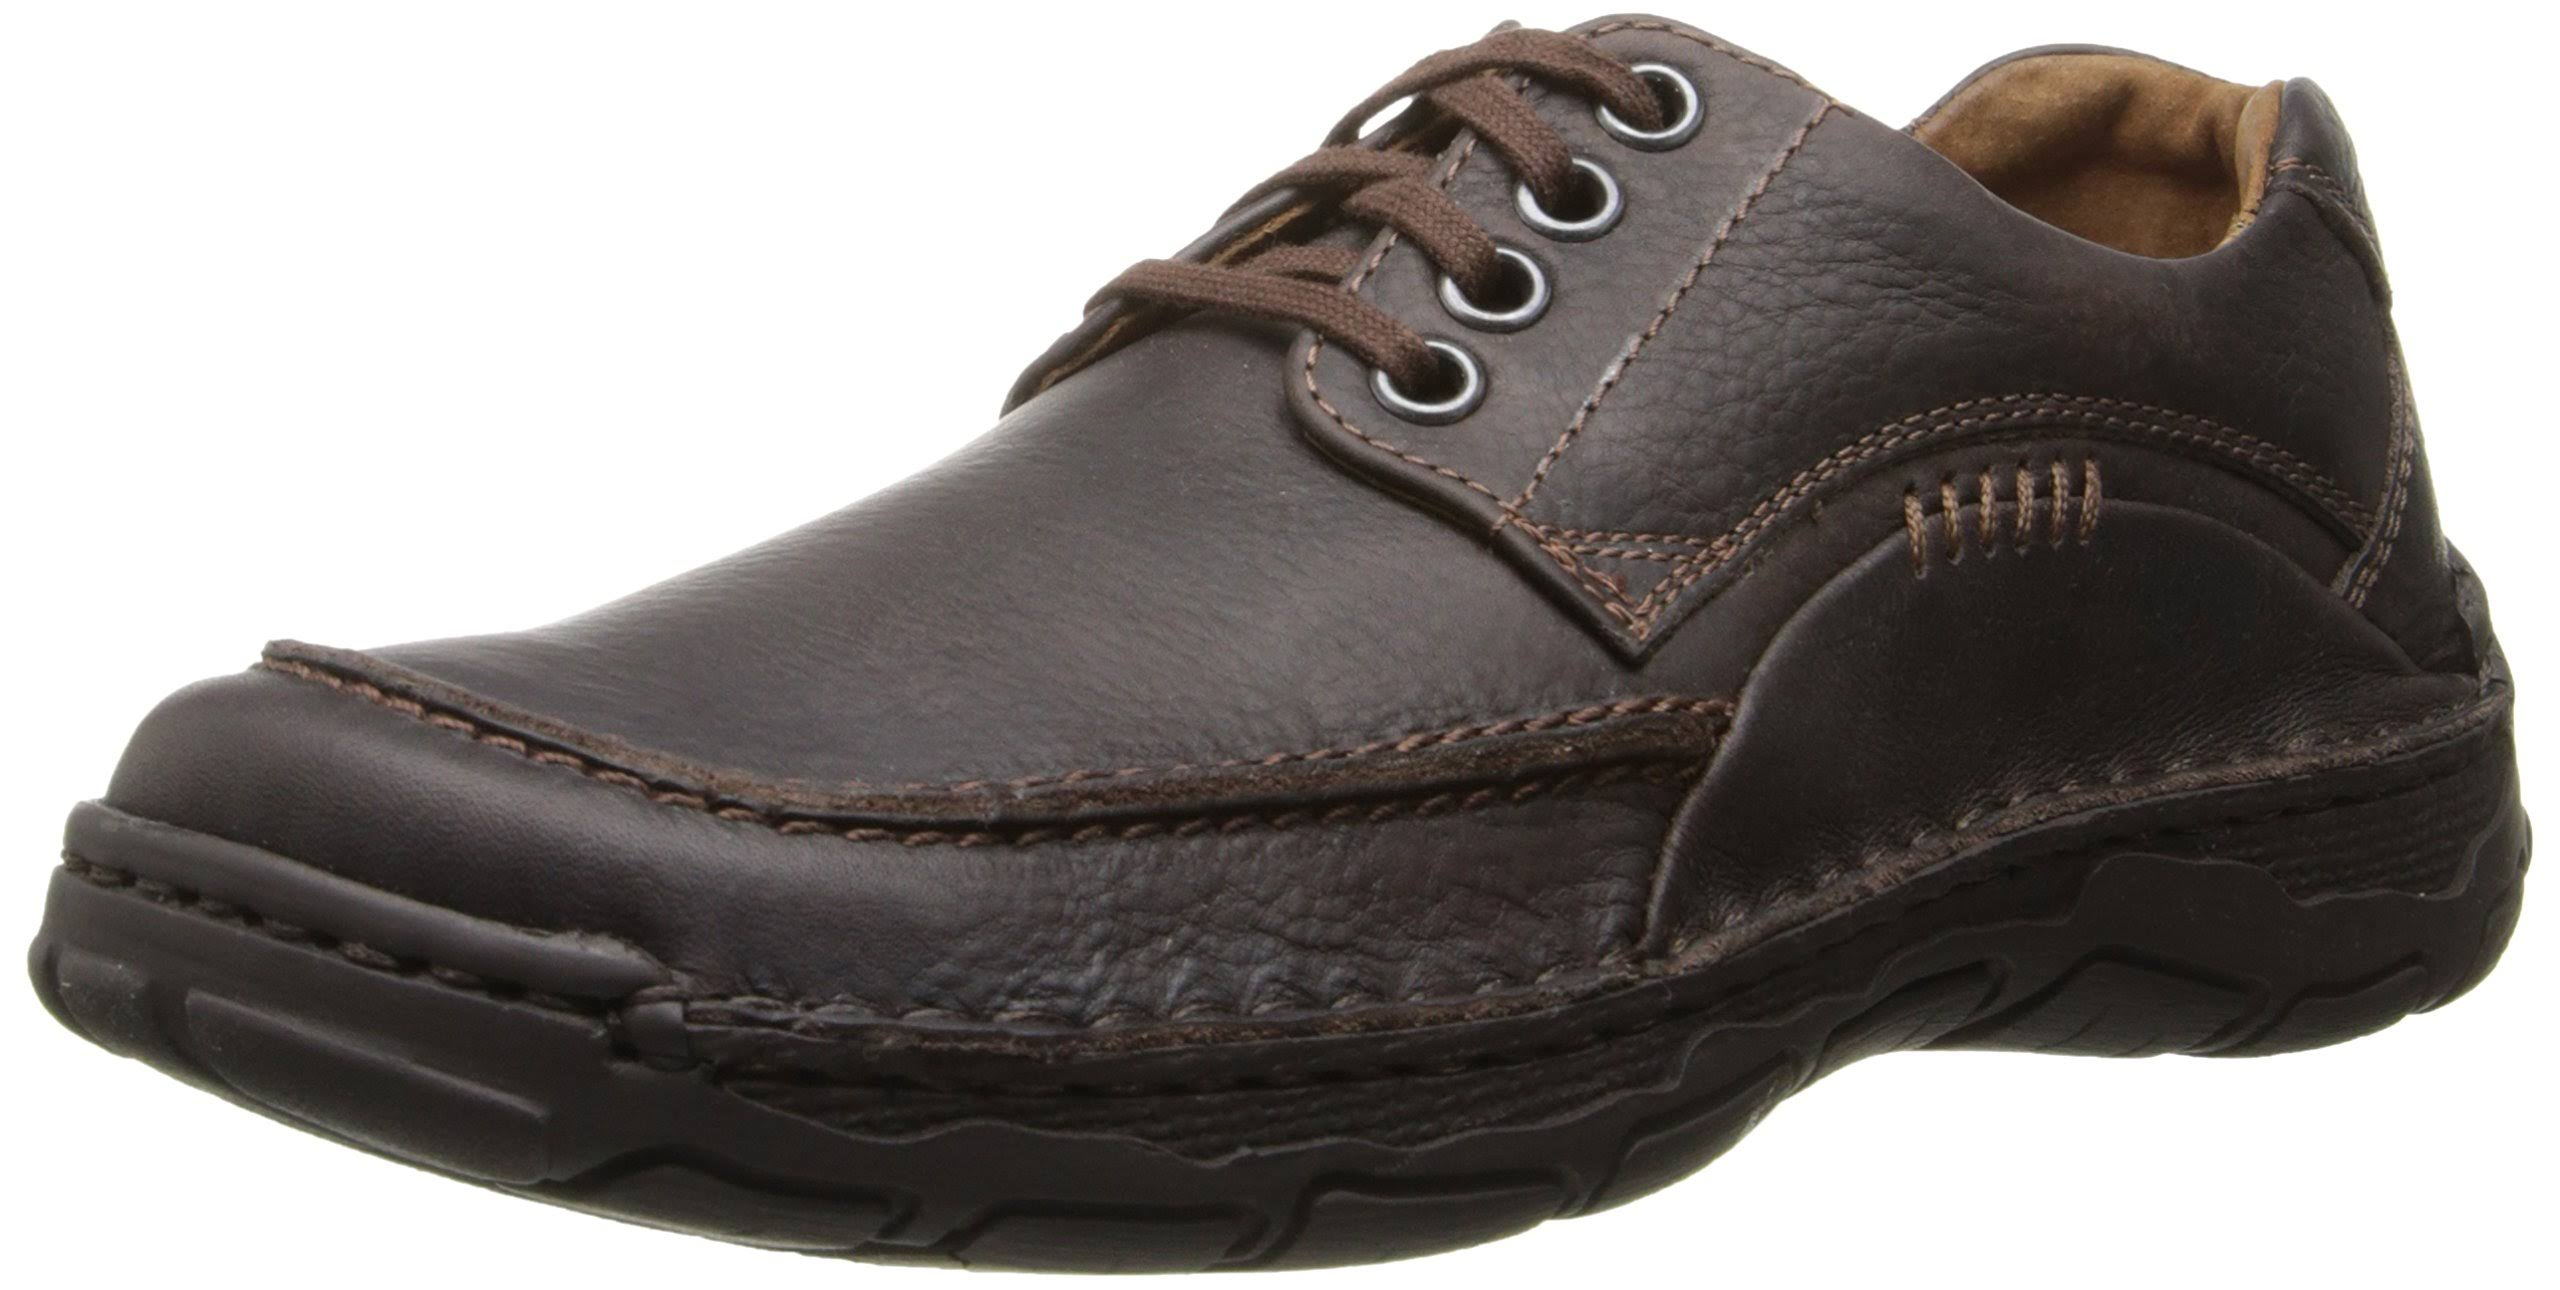 Josef Seibel Men's Kongo Oxford